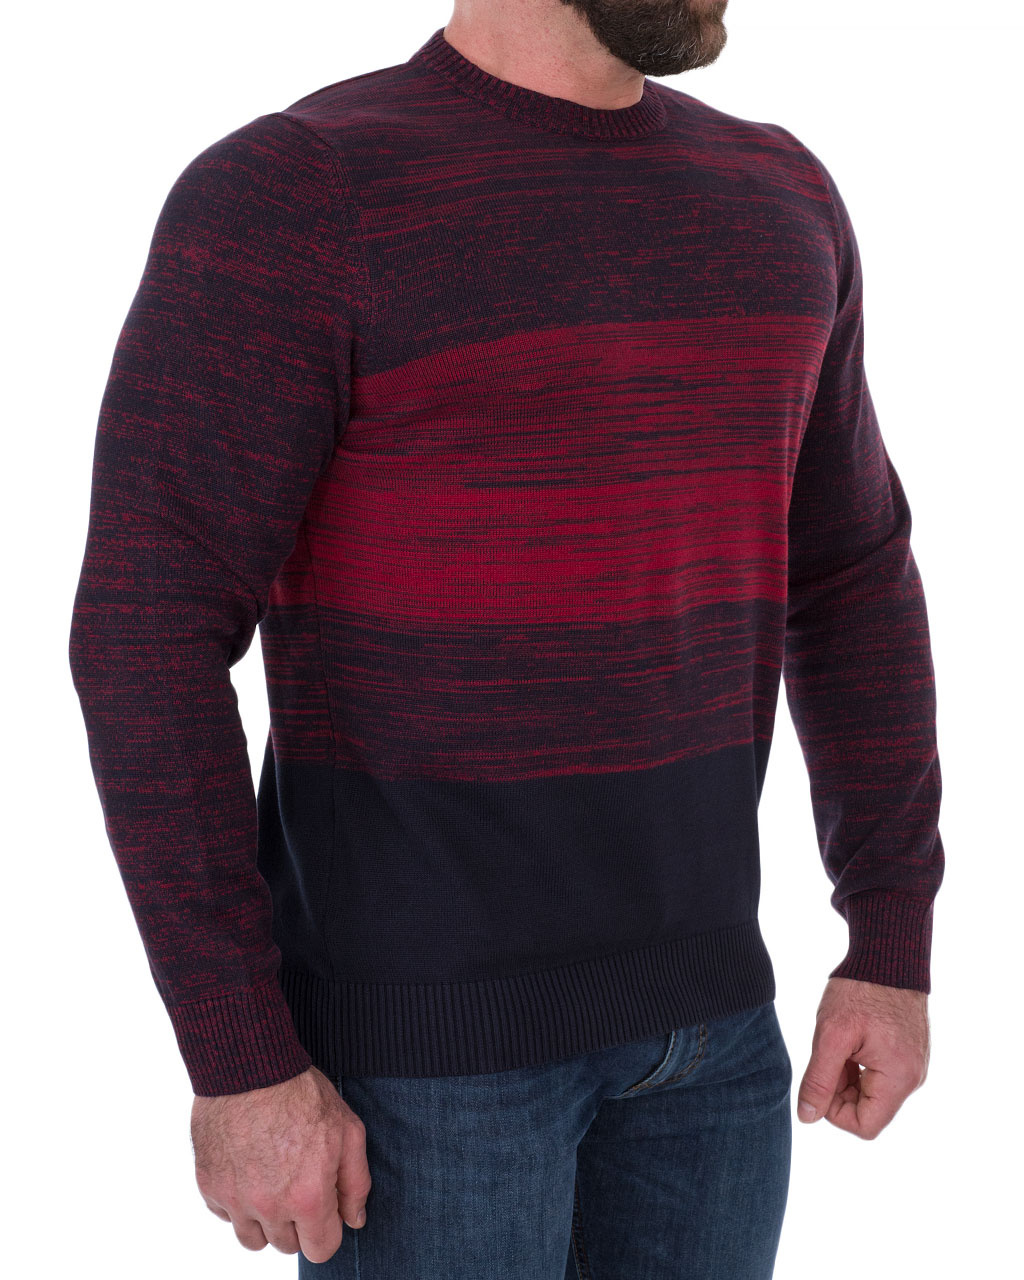 Men's jumper 7450-45522-960/19-20--2 (3)